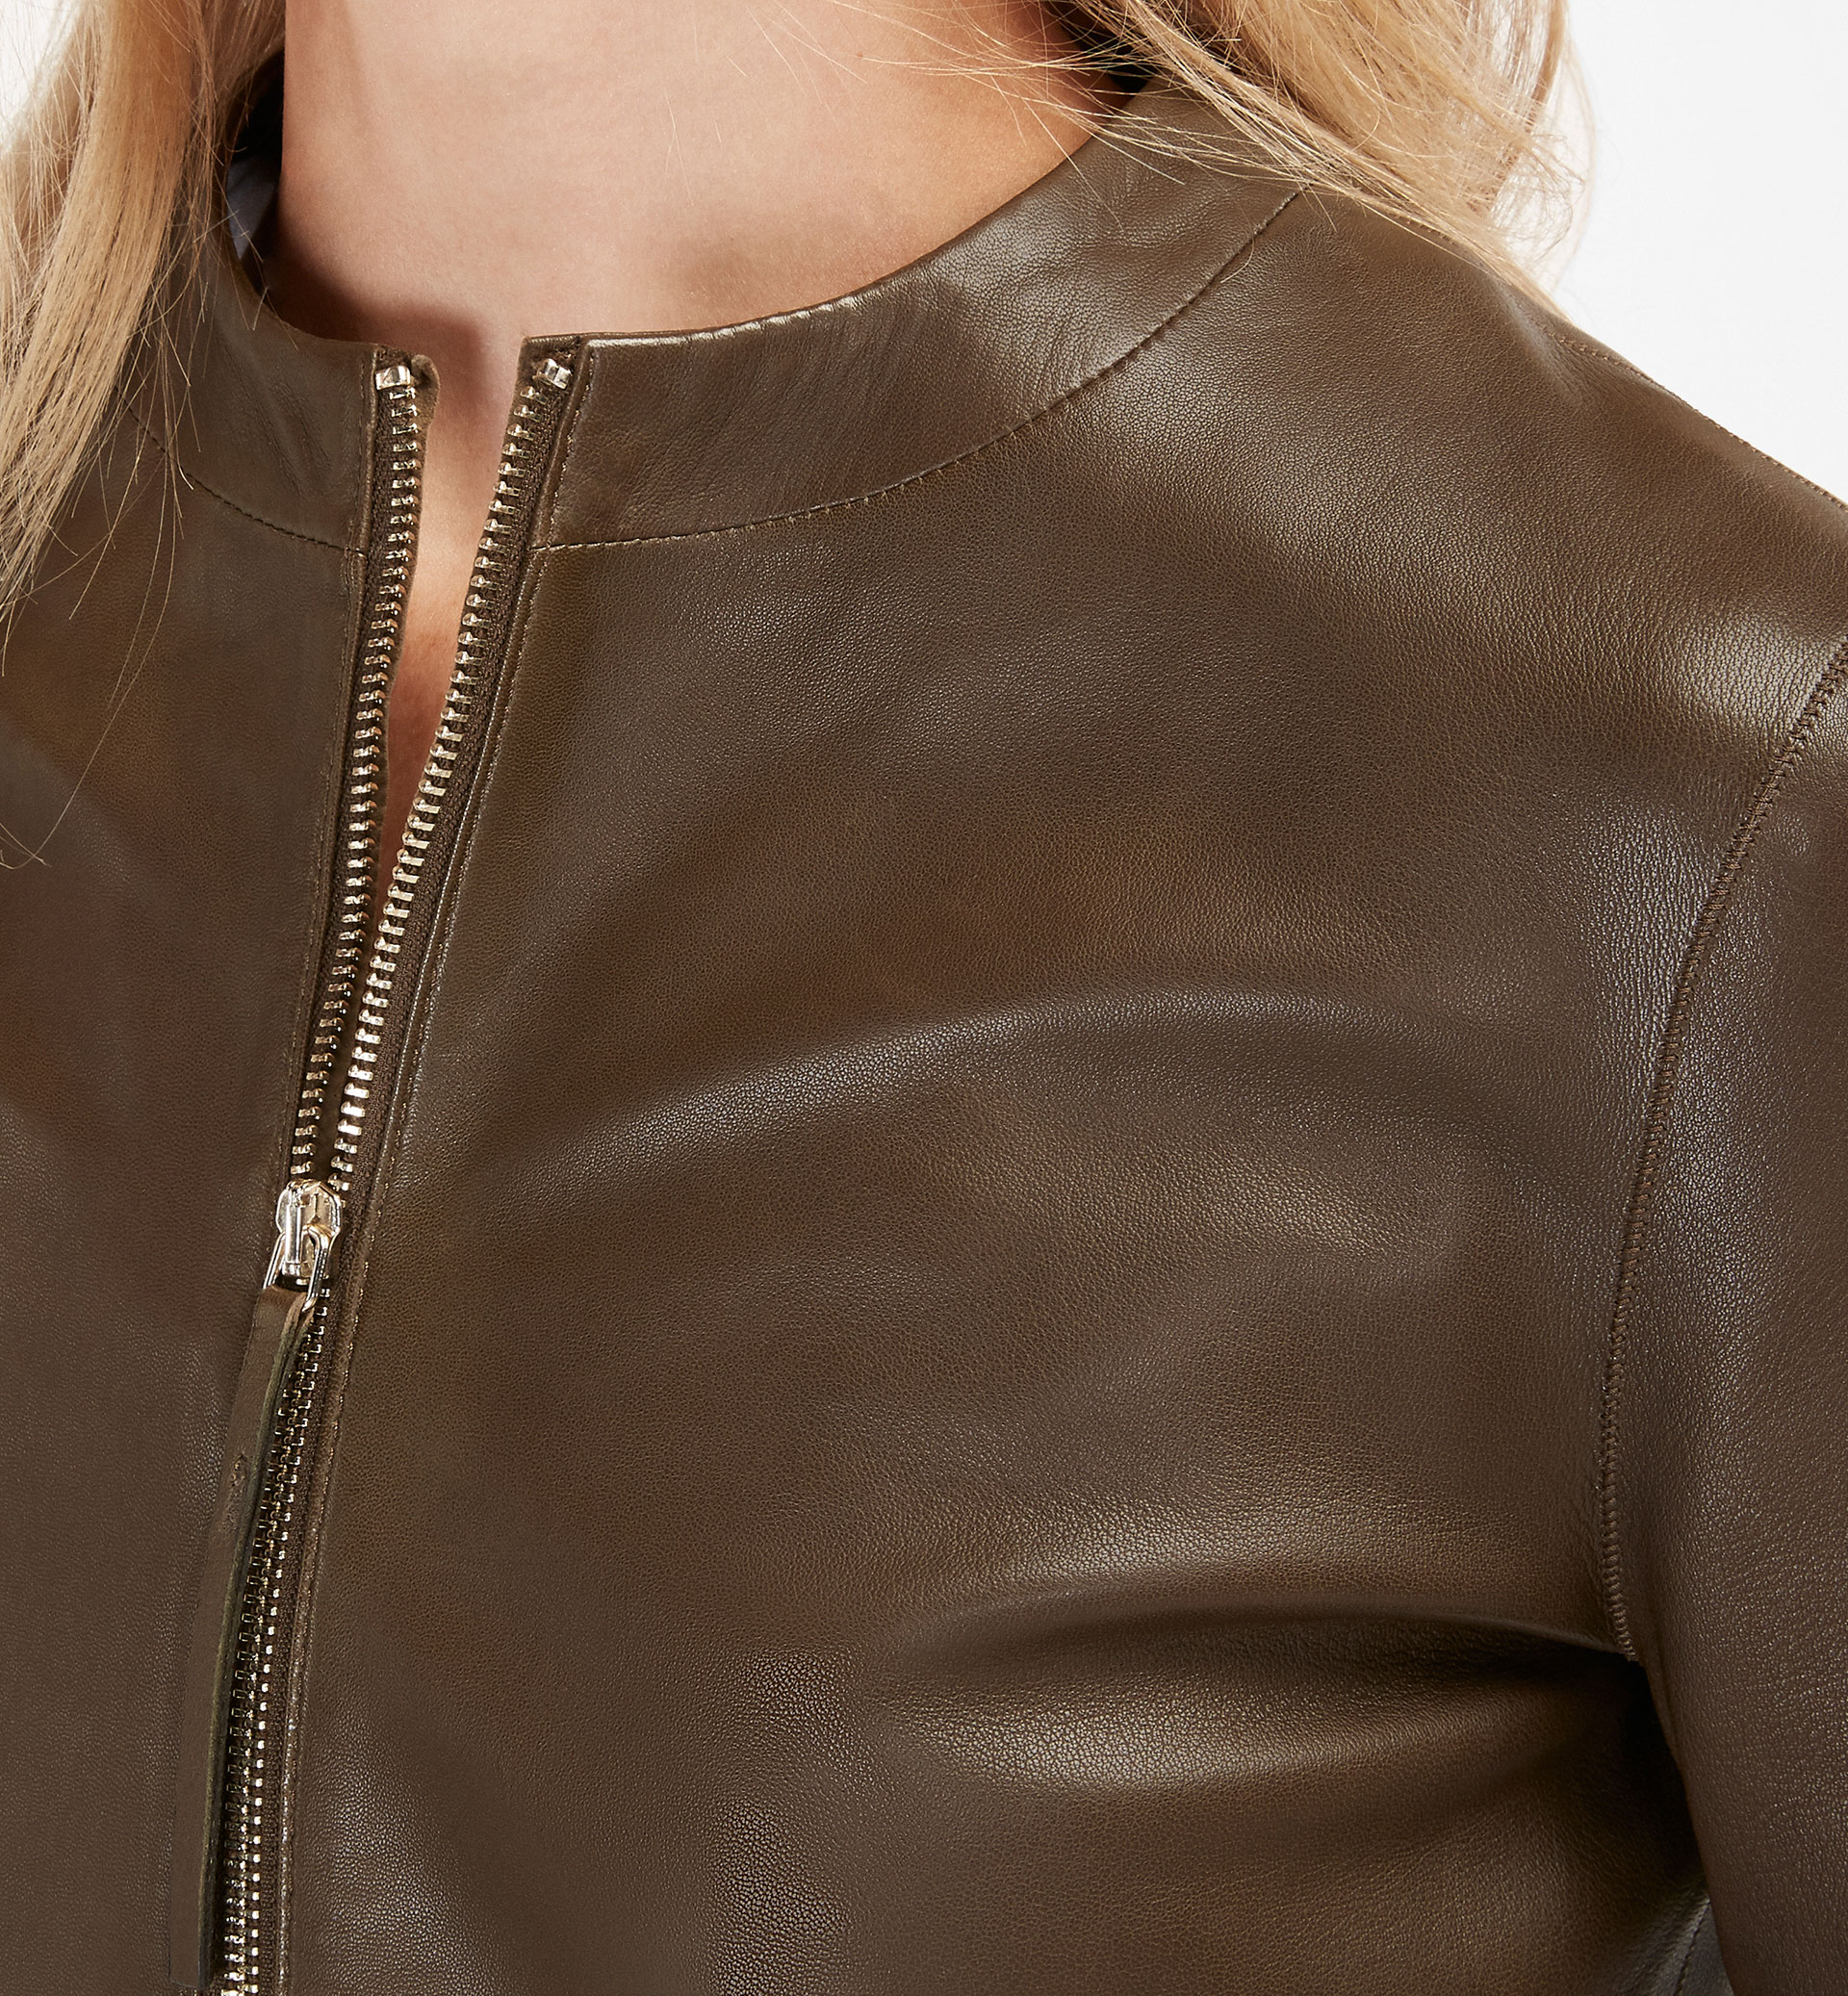 KHAKI NAPPA LEATHER JACKET